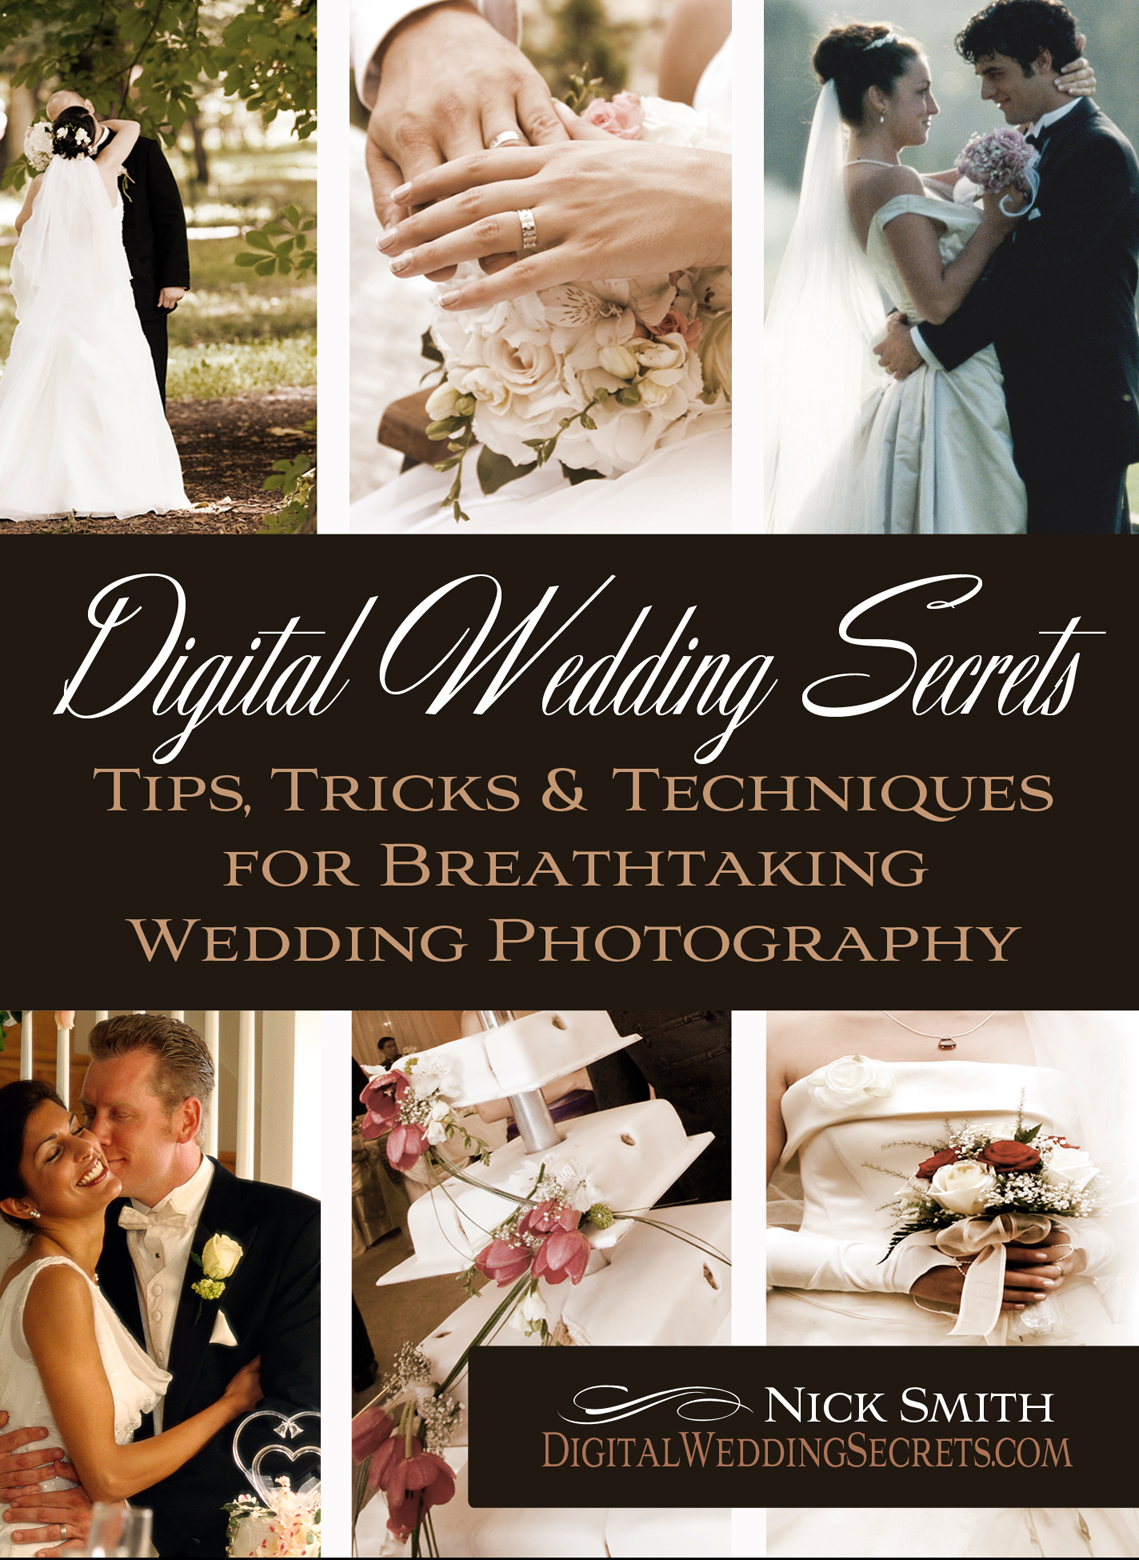 Digital Wedding Secrets Review Can Help Users Become Professional Photographers And Prominent Businessmen